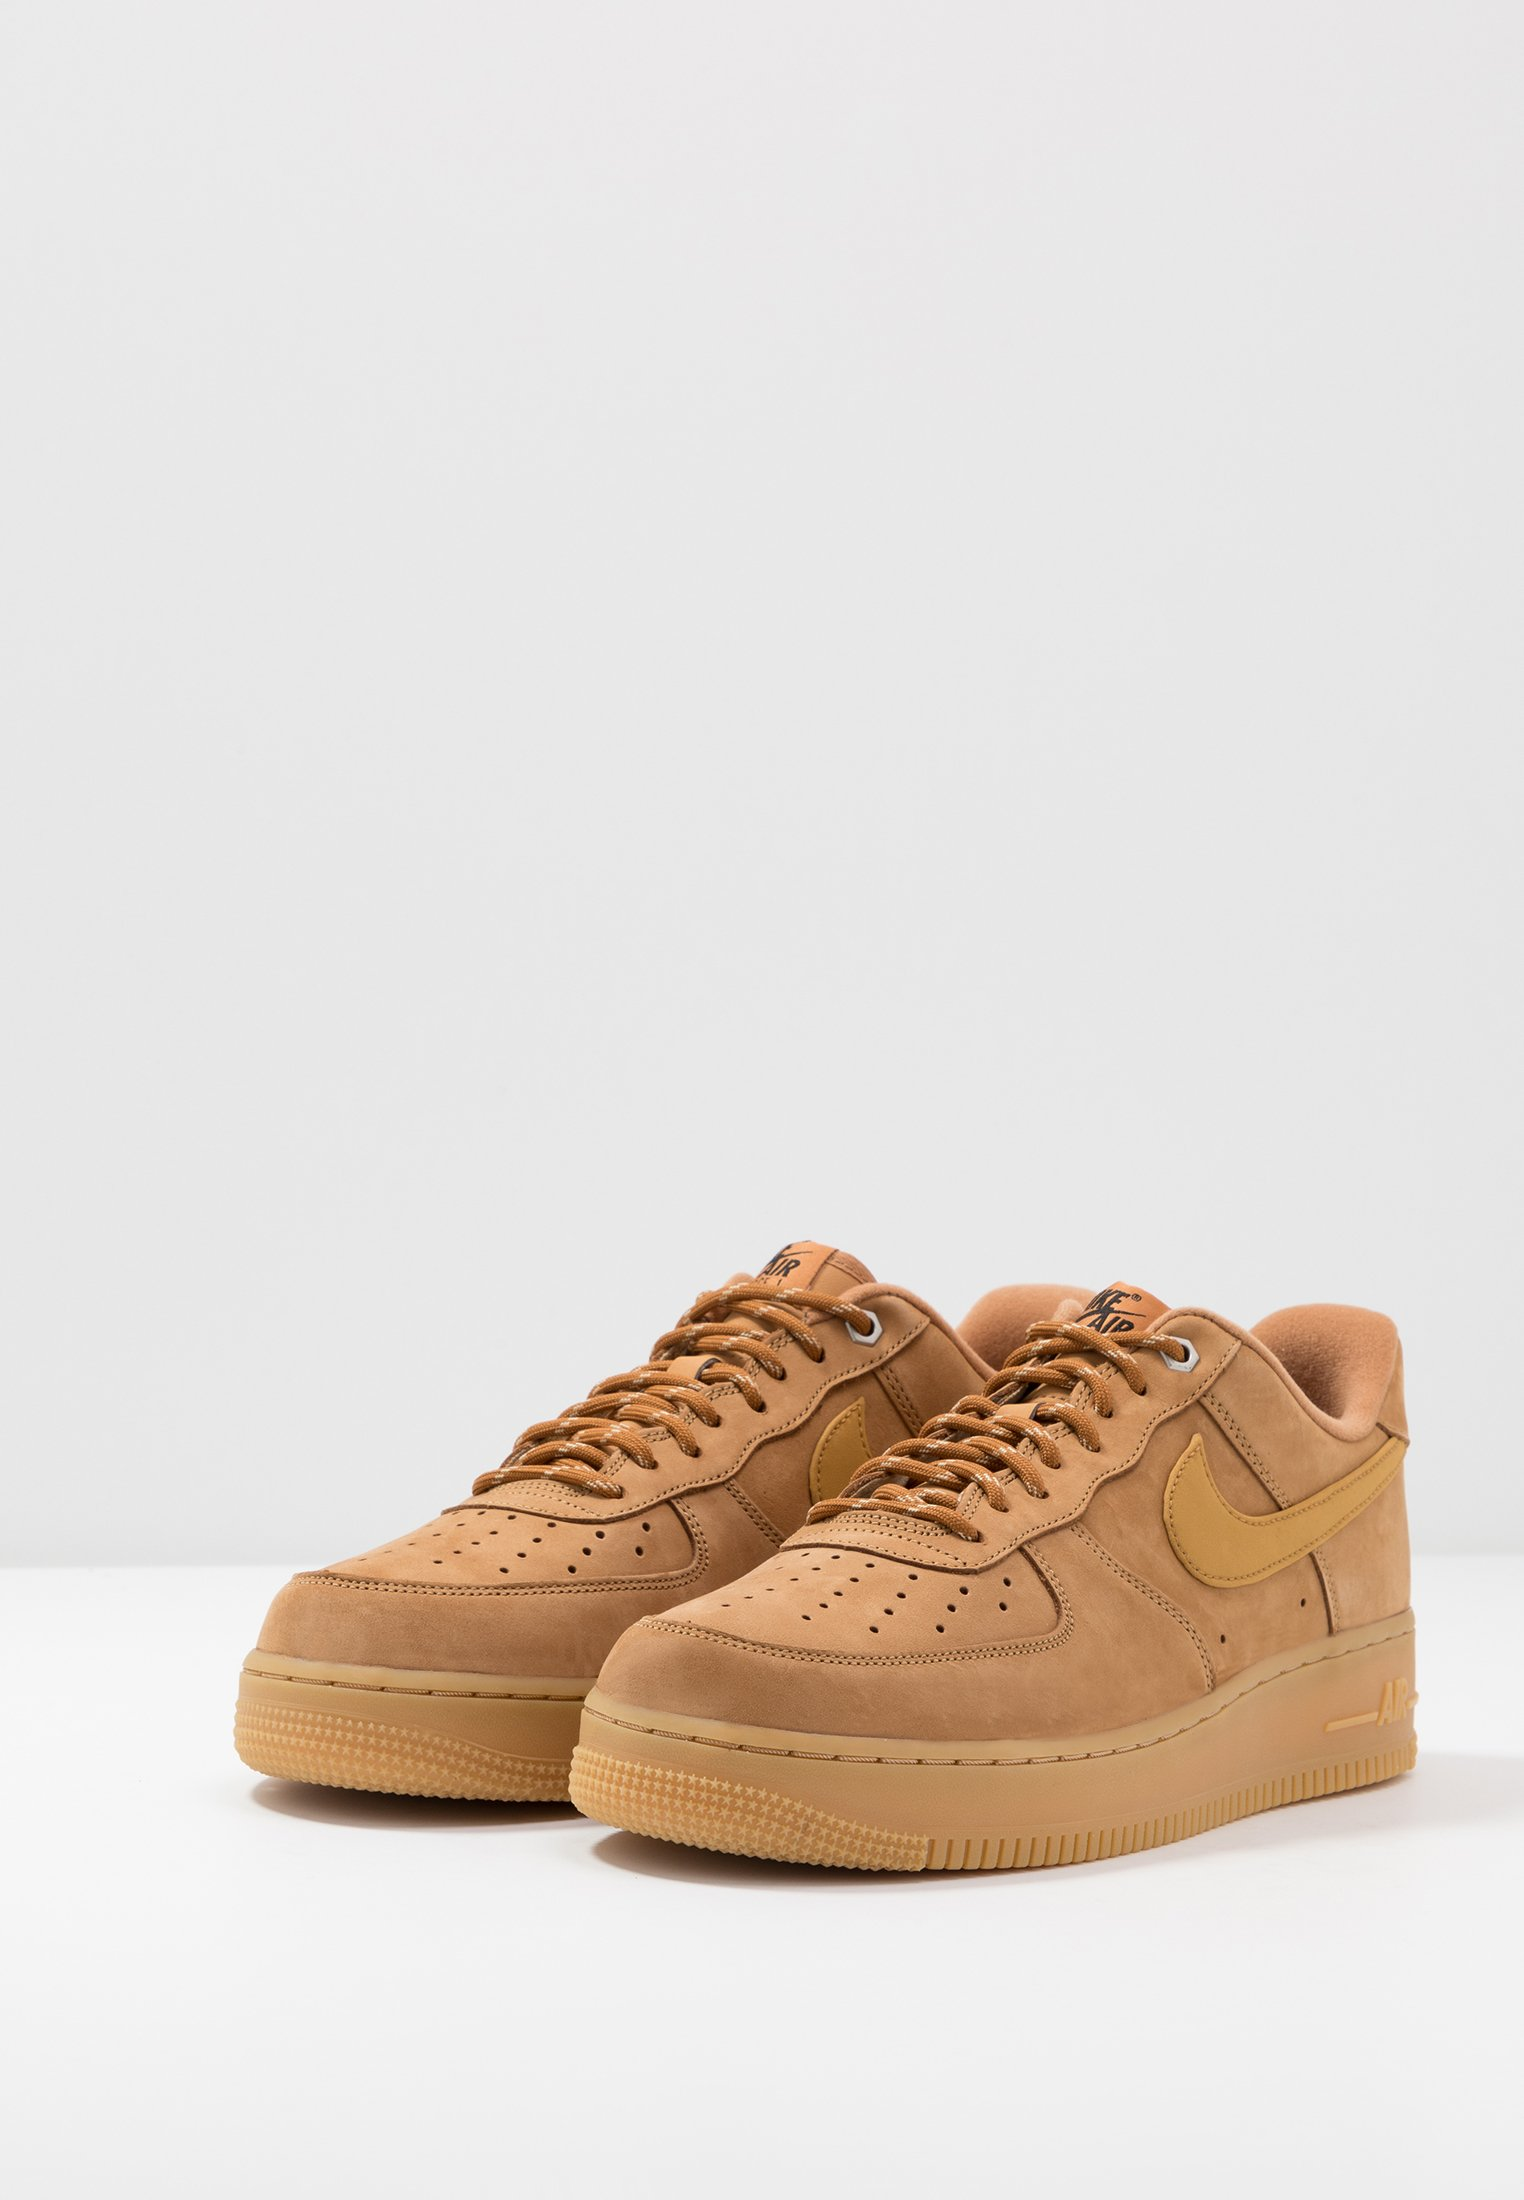 Nike Sportswear AIR FORCE 1 '07 - Baskets basses flax/wheat/light brown/black/team gold